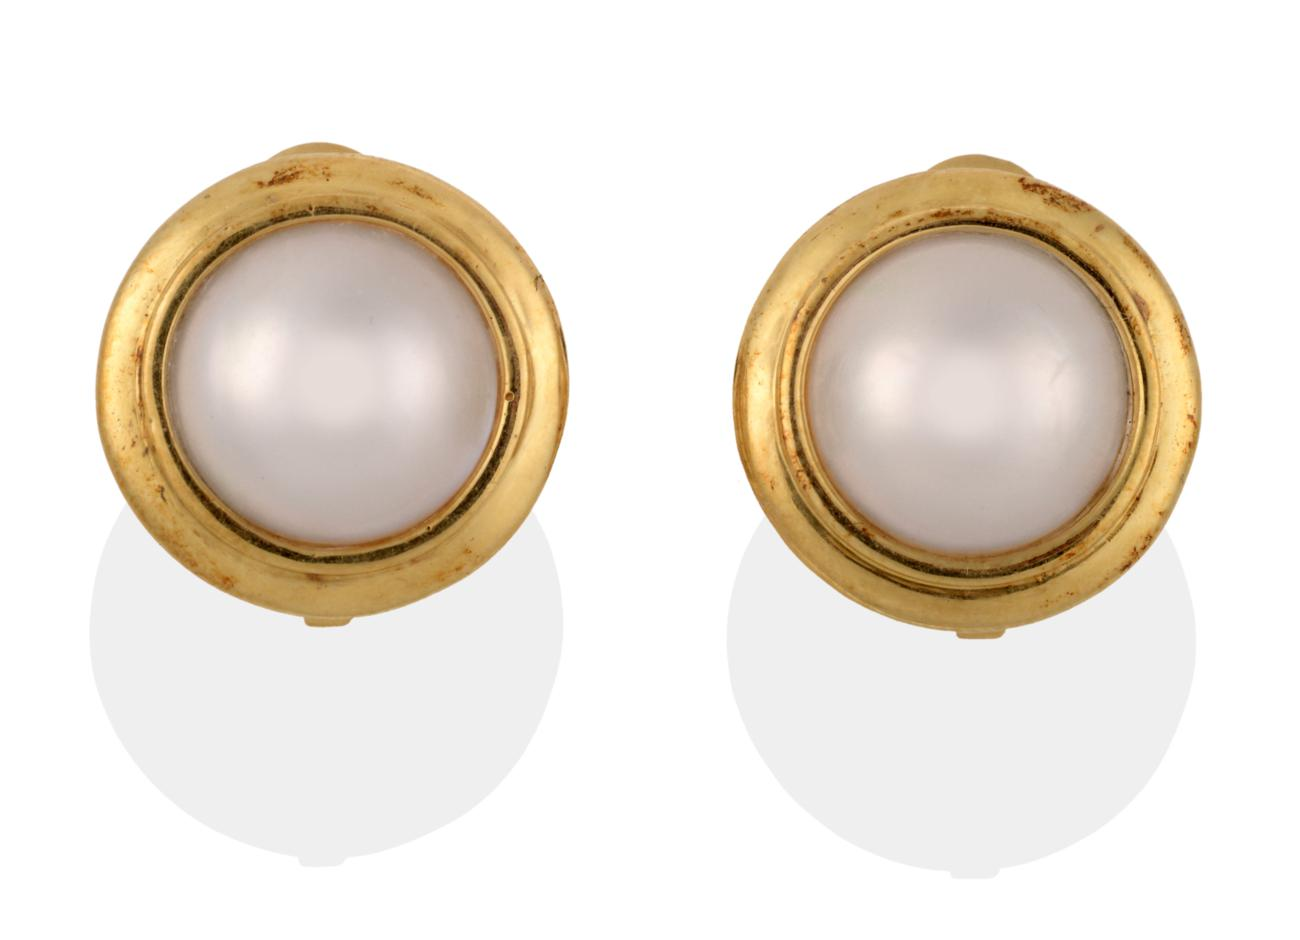 Lot 2065 - A Pair of Mabe Pearl Earrings, the large round mabe pearl in yellow collet mounts, diameter...